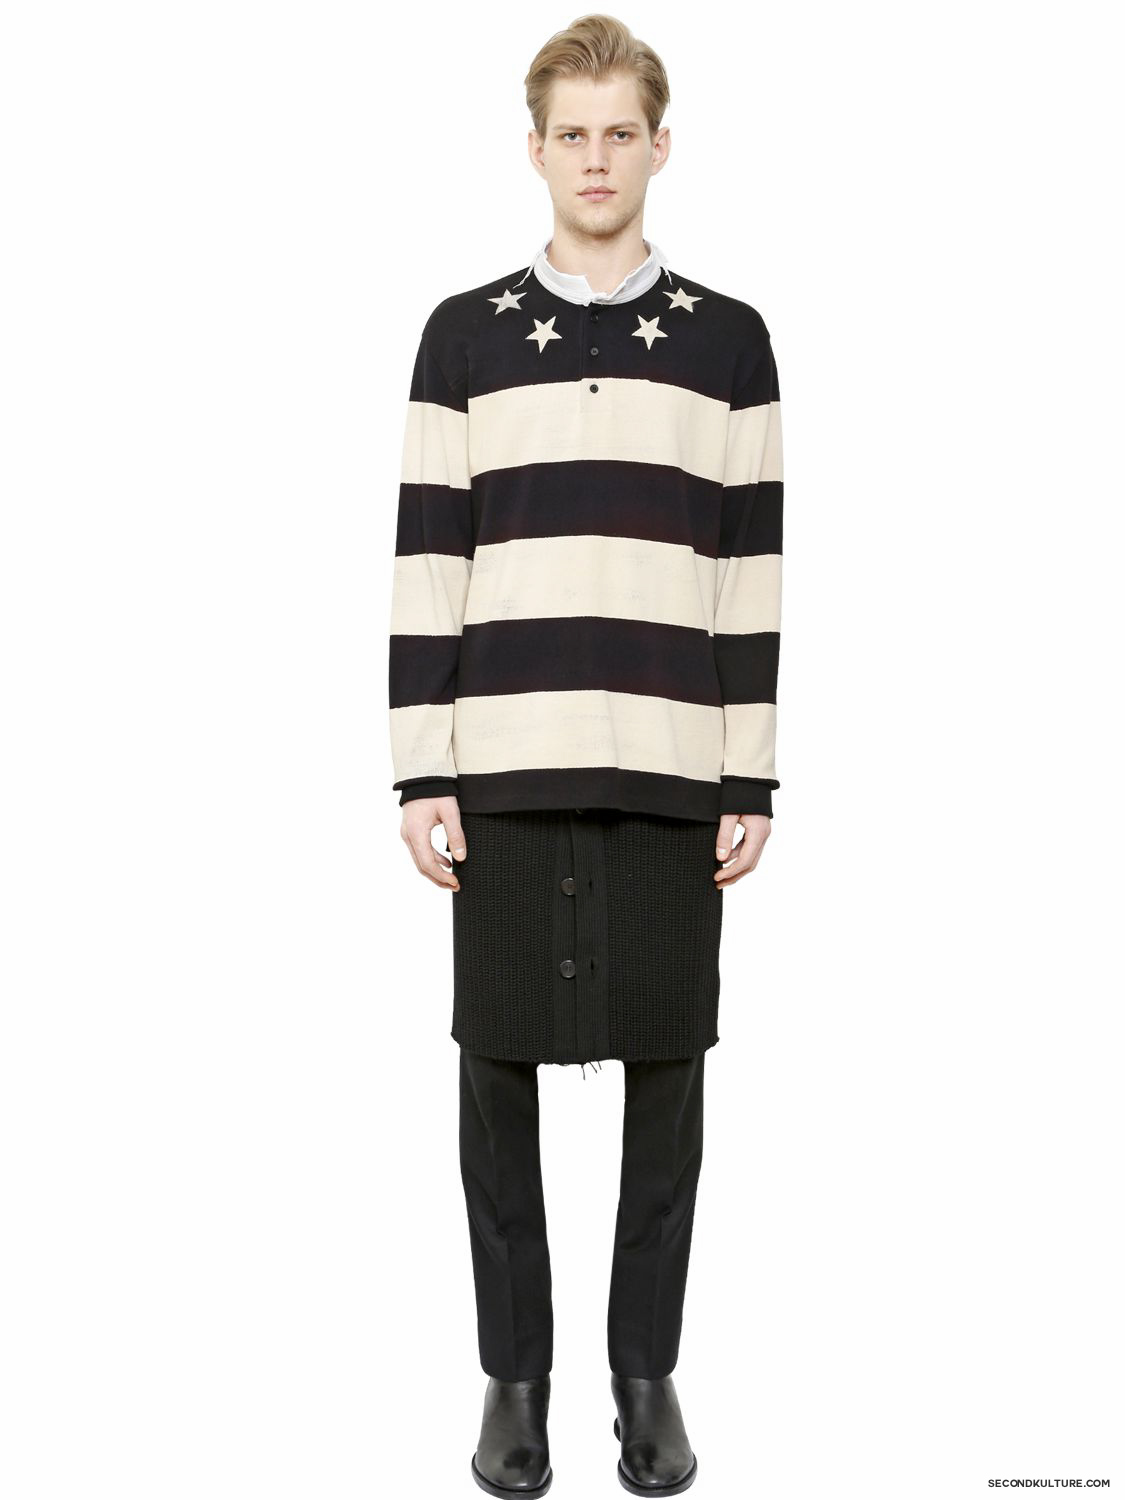 Givenchy-Stars-and-Stripes-Raw-Collar-Pique-Polo-Shirt-Fall-Winter-2015-2